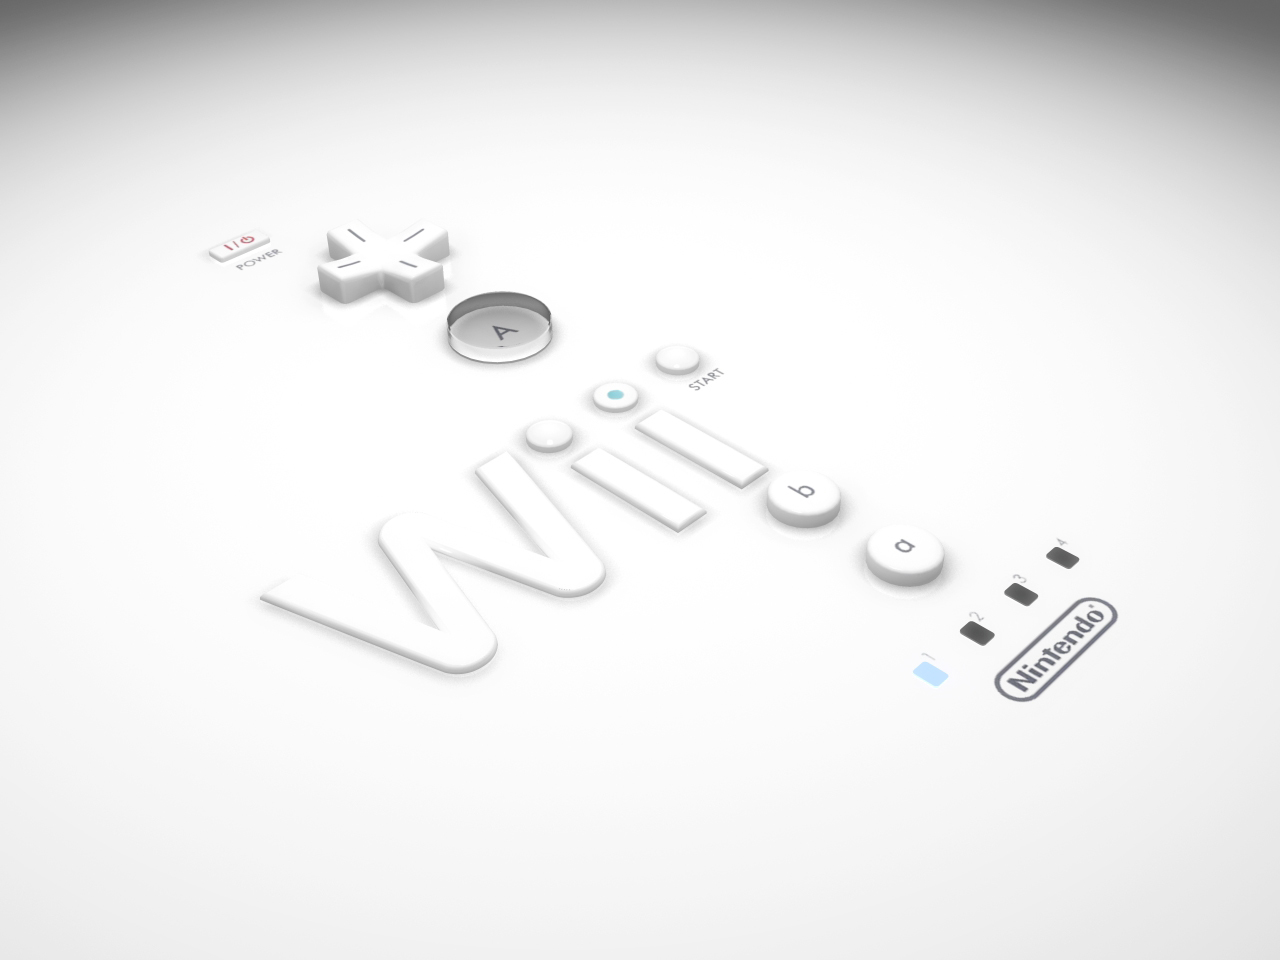 nintendo Nintendo Wii Wiimote HD Wallpaper